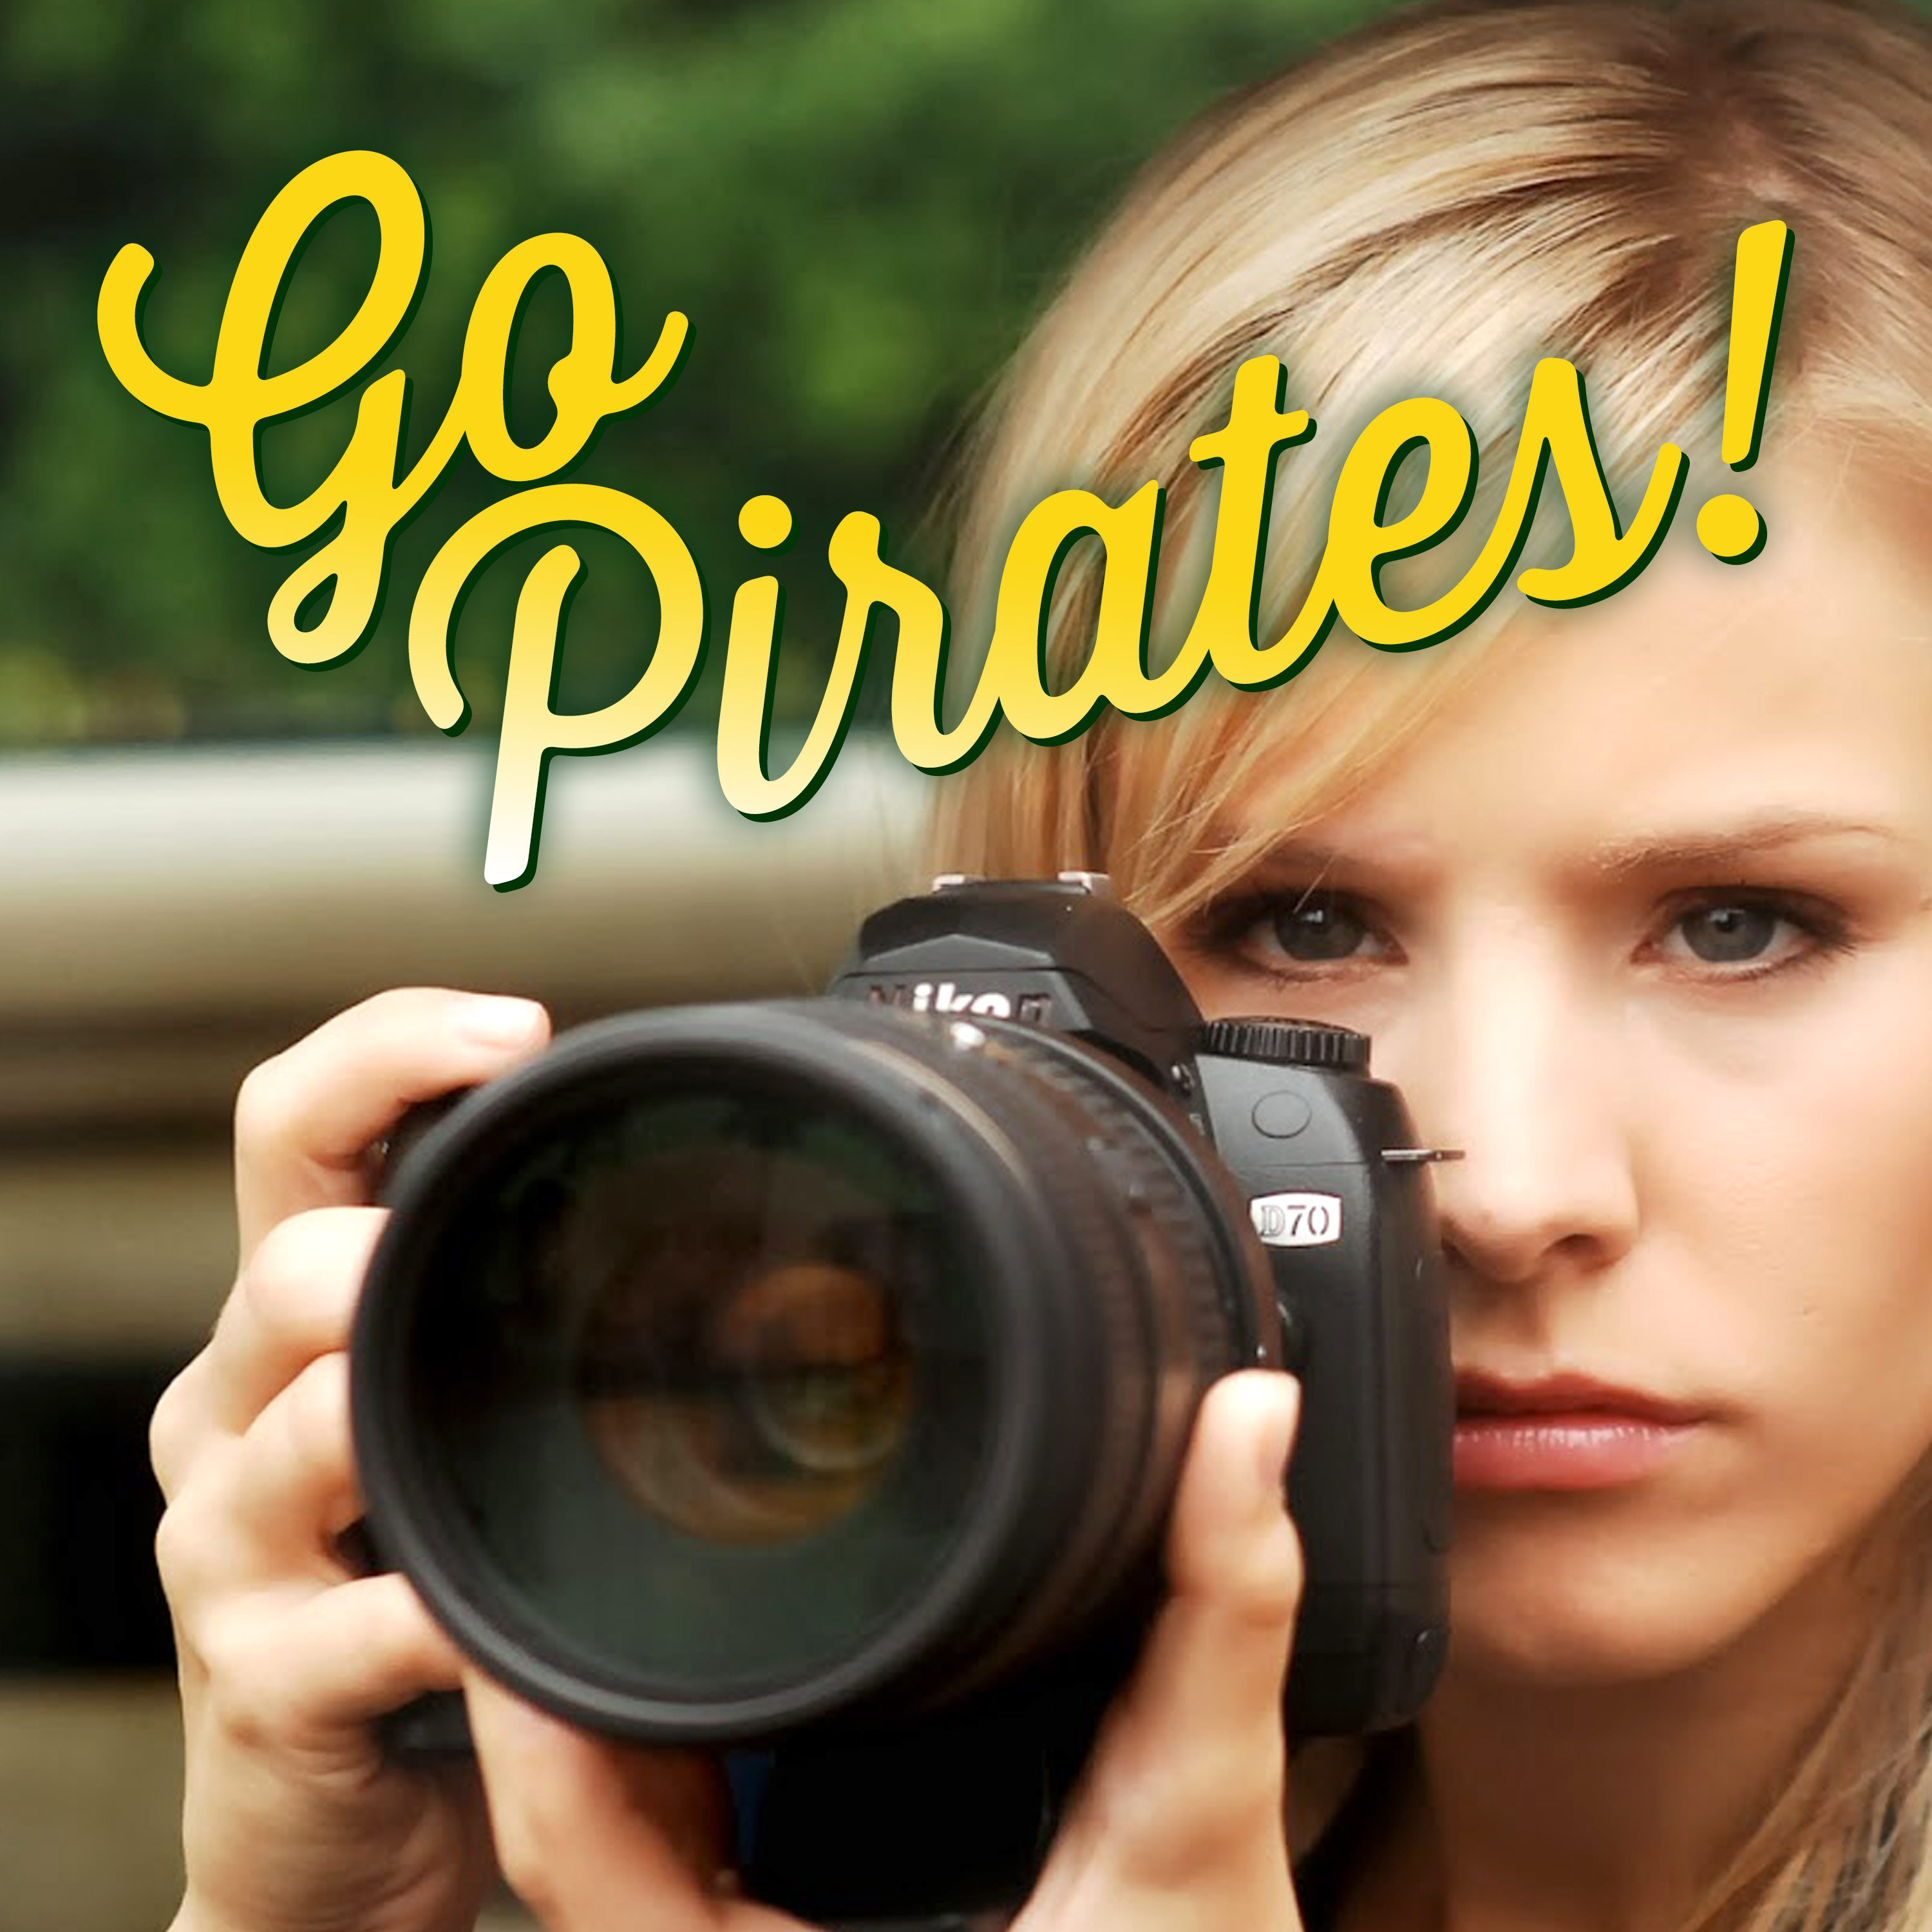 Go Pirates: Veronica Mars